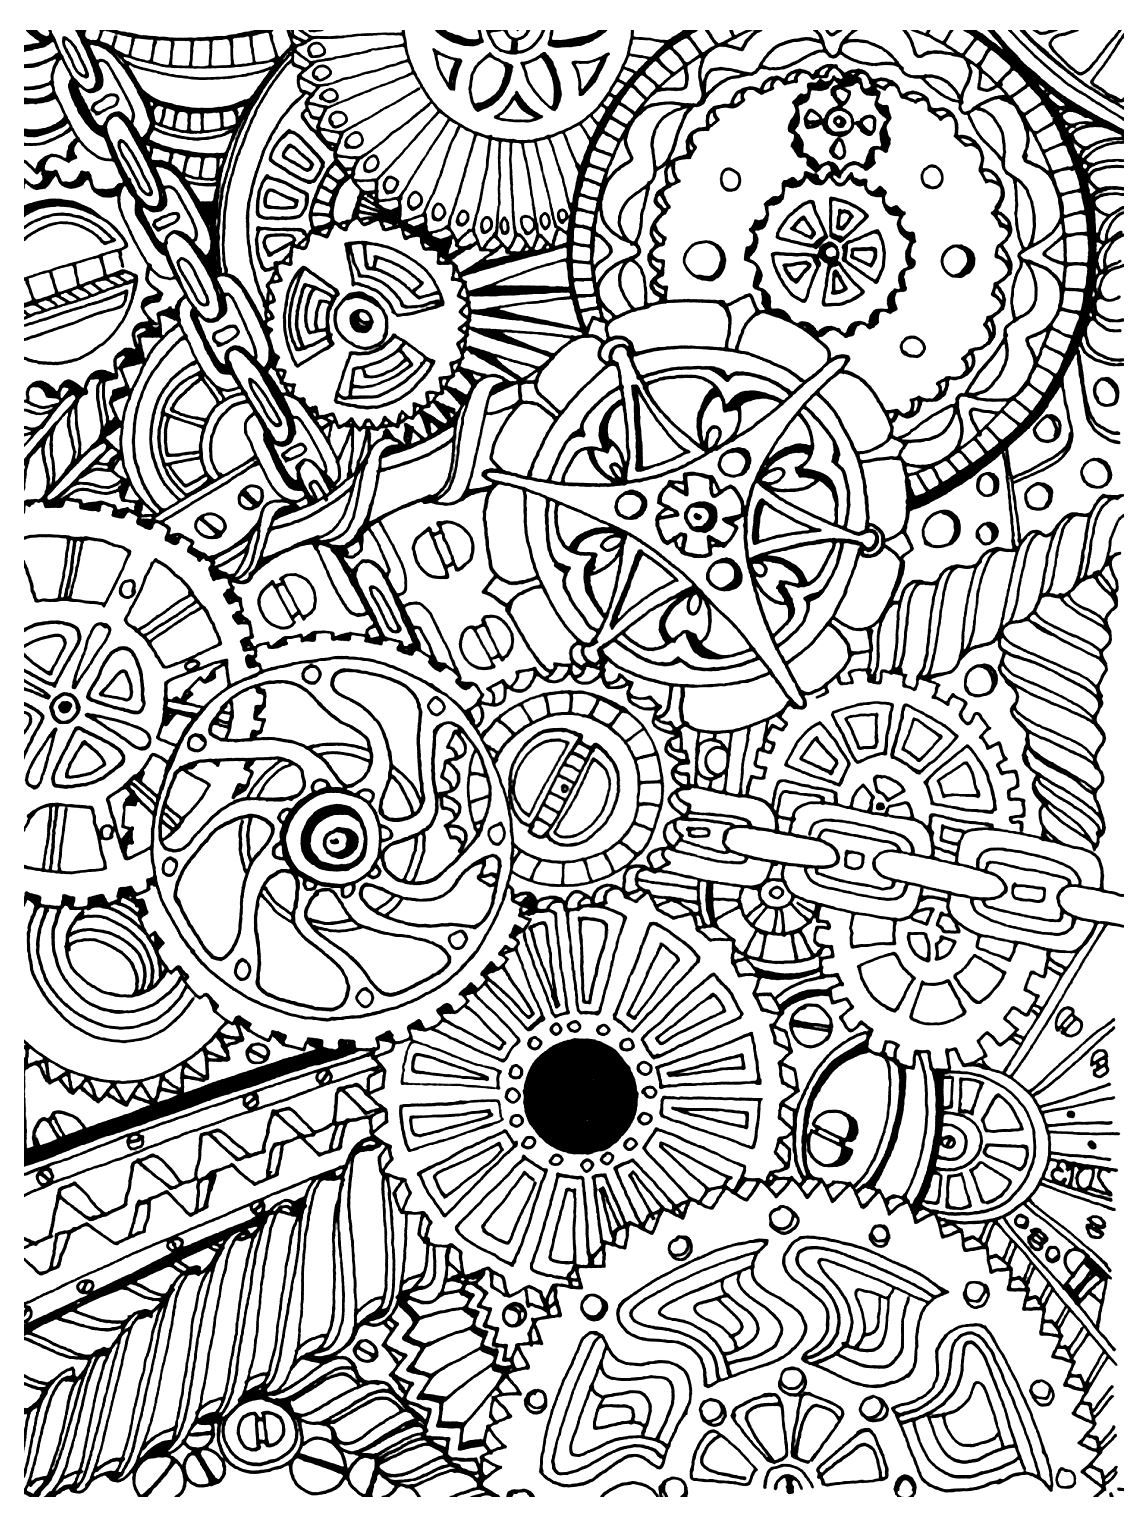 Free coloring page coloring adult zen anti stress mechanisms to